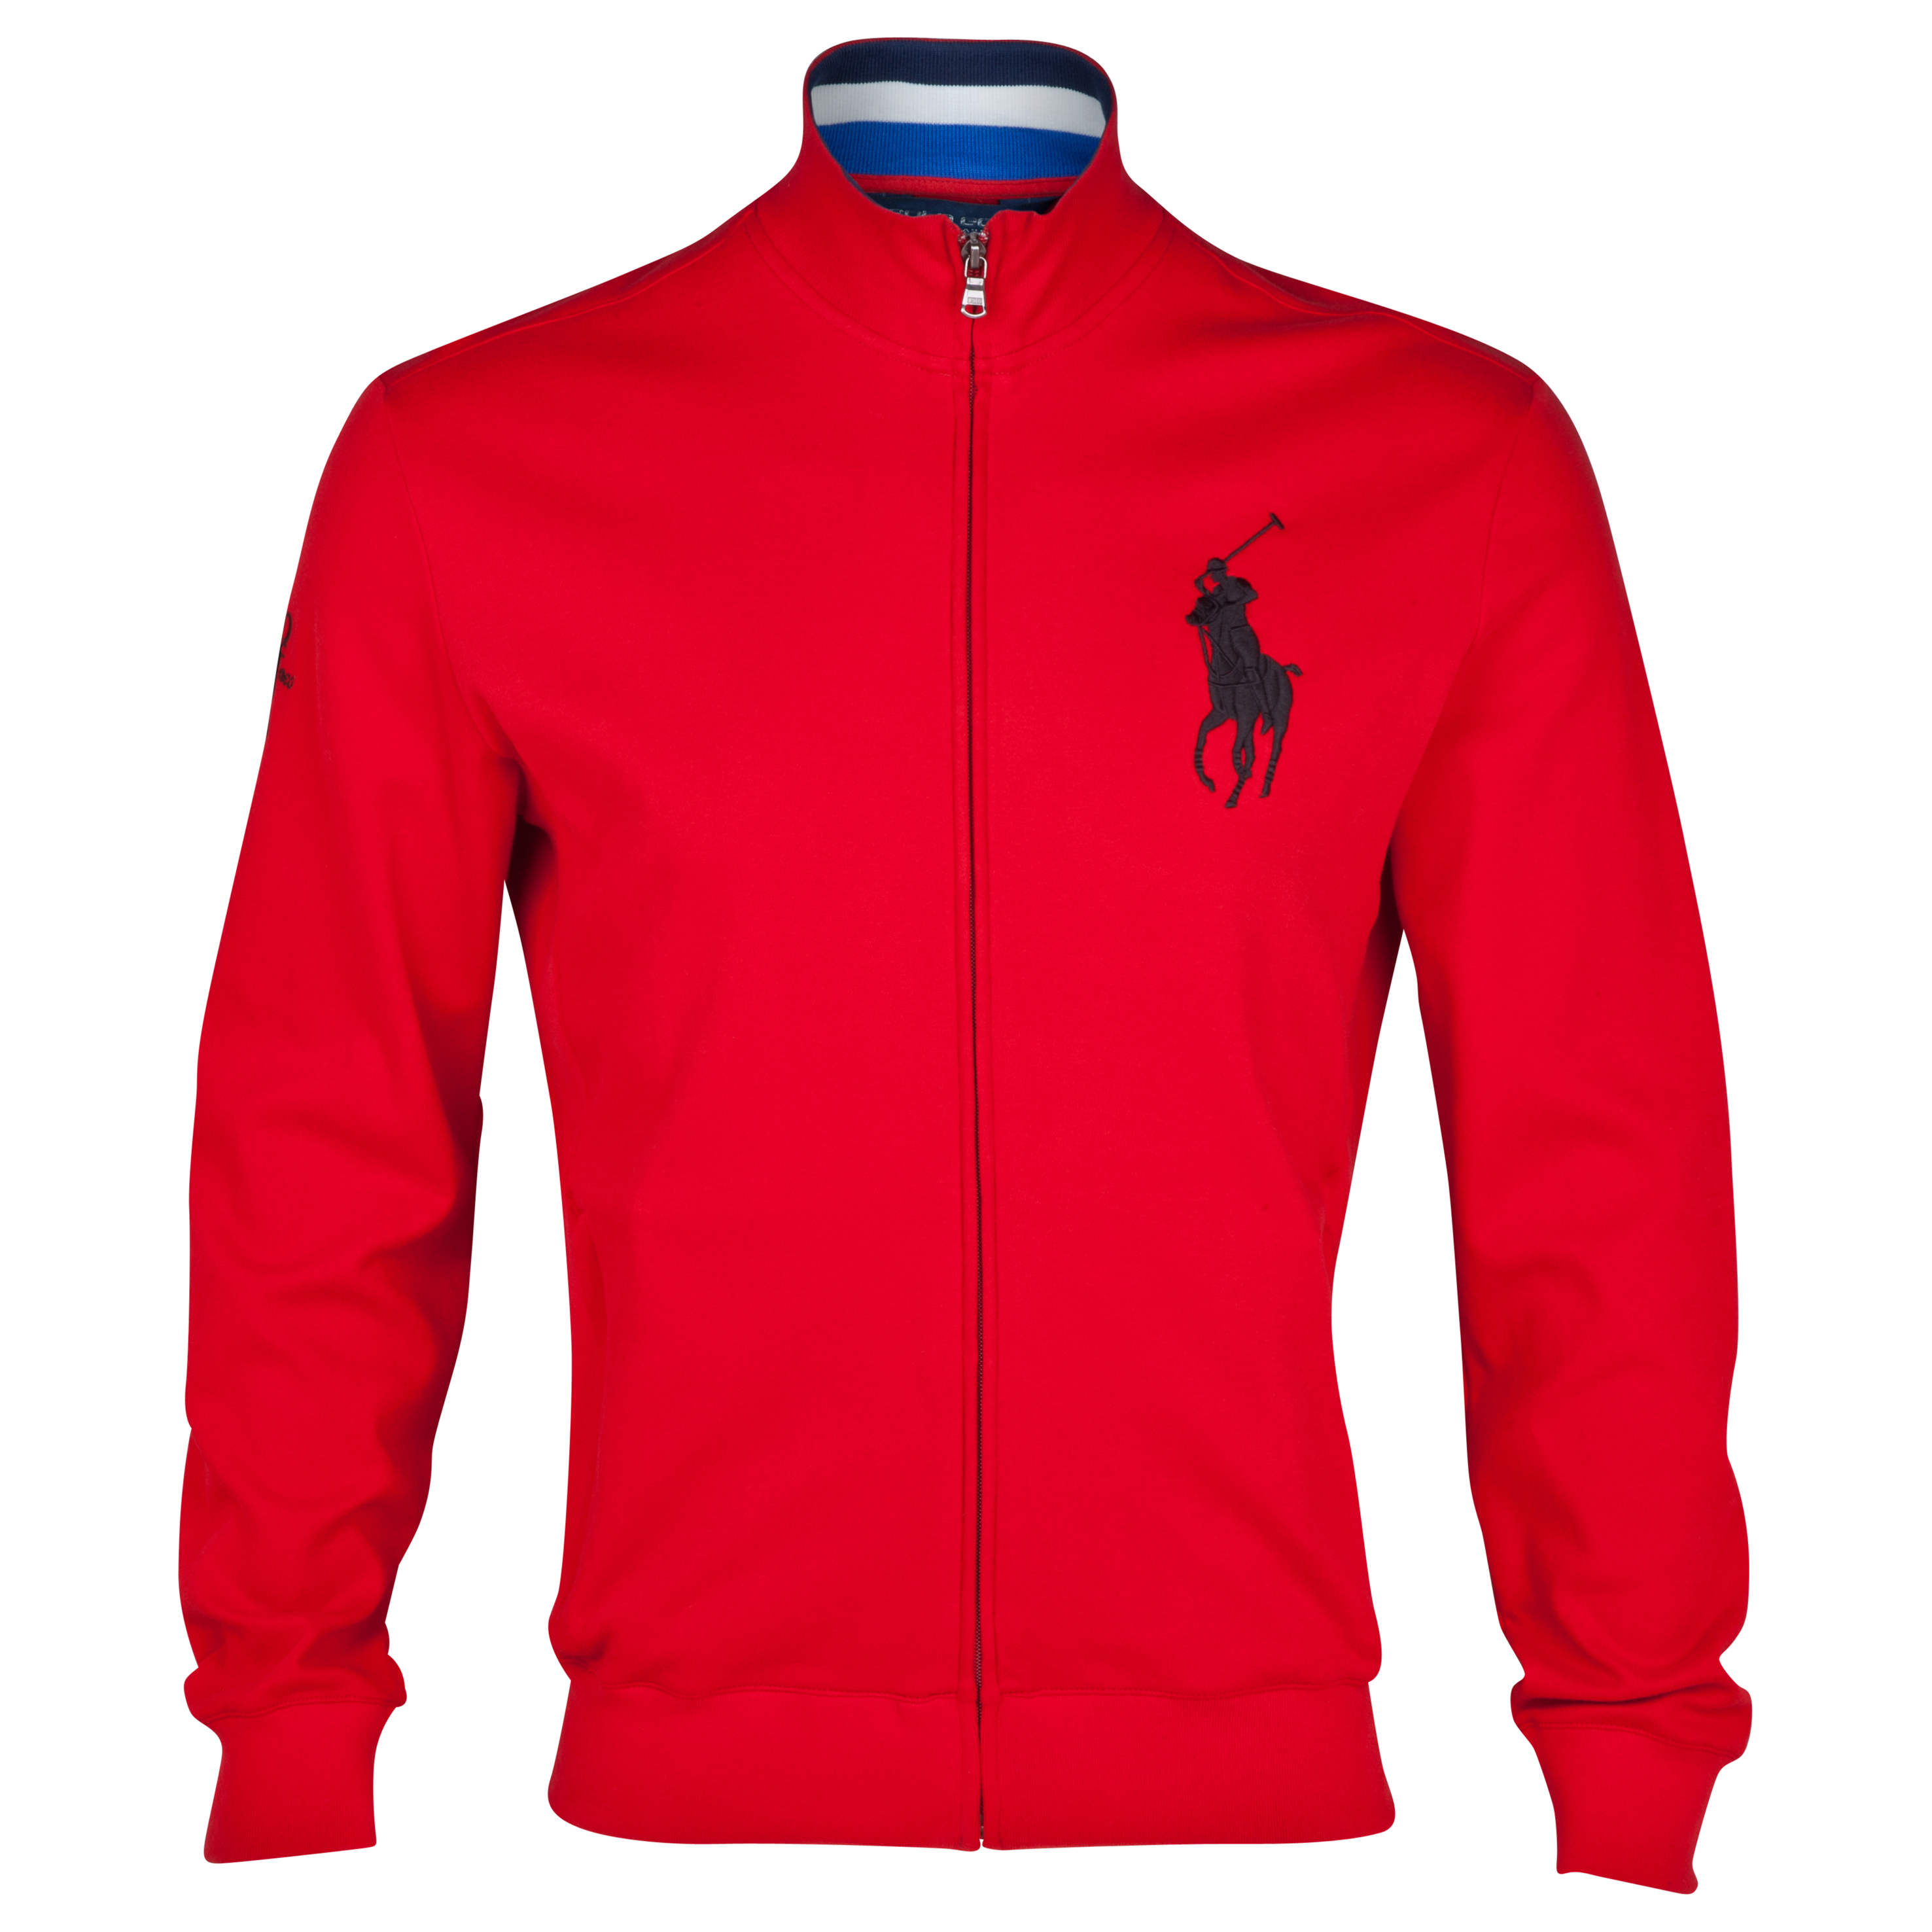 The Open Championship 2013 Muirfield Polo Ralph Lauren Mock Neck Fleece Red